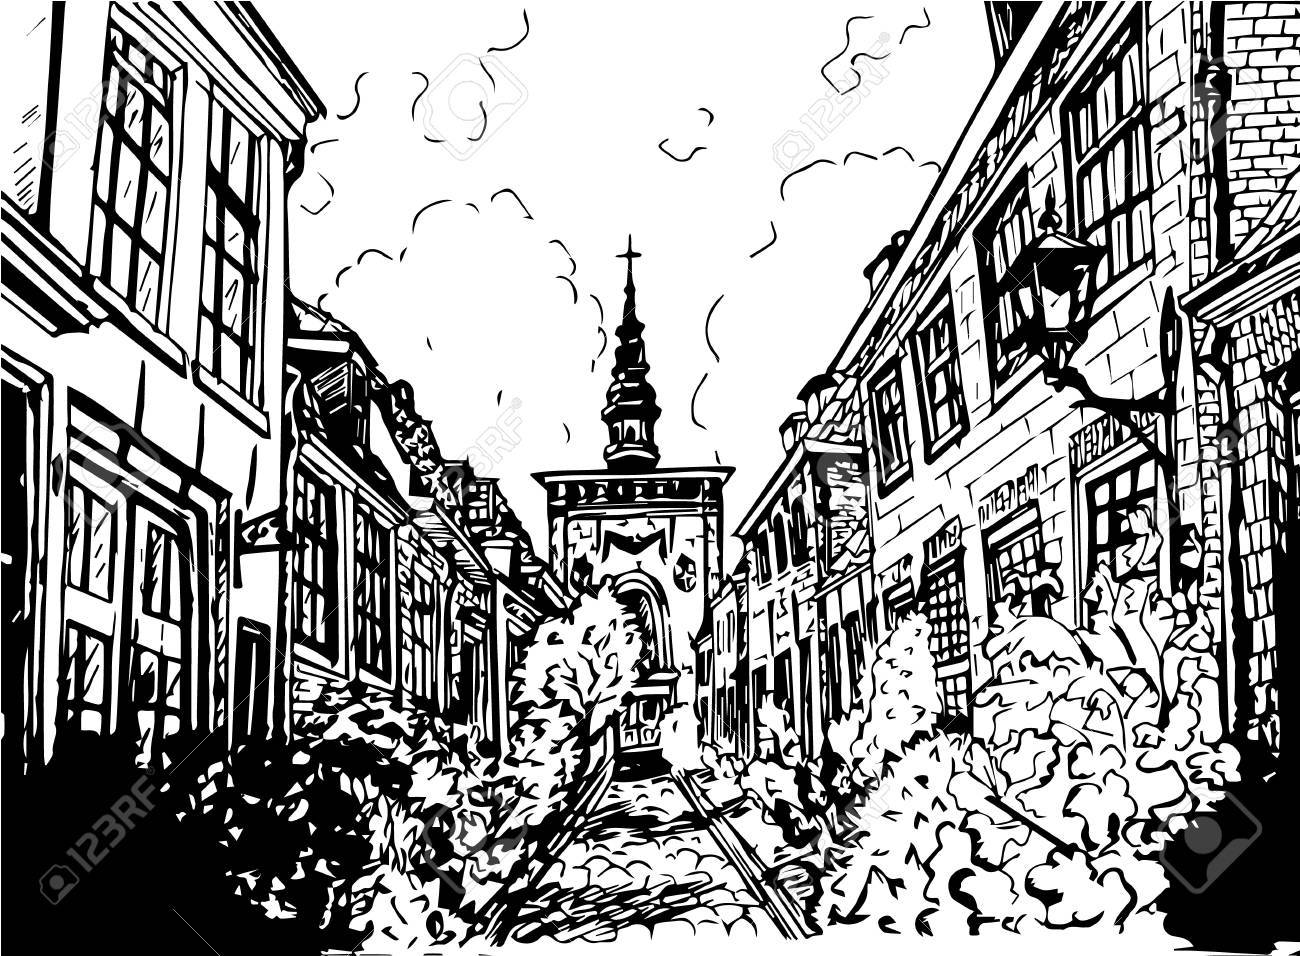 1300x956 Hand Drawn Black And White Illustration Of A City Royalty Free